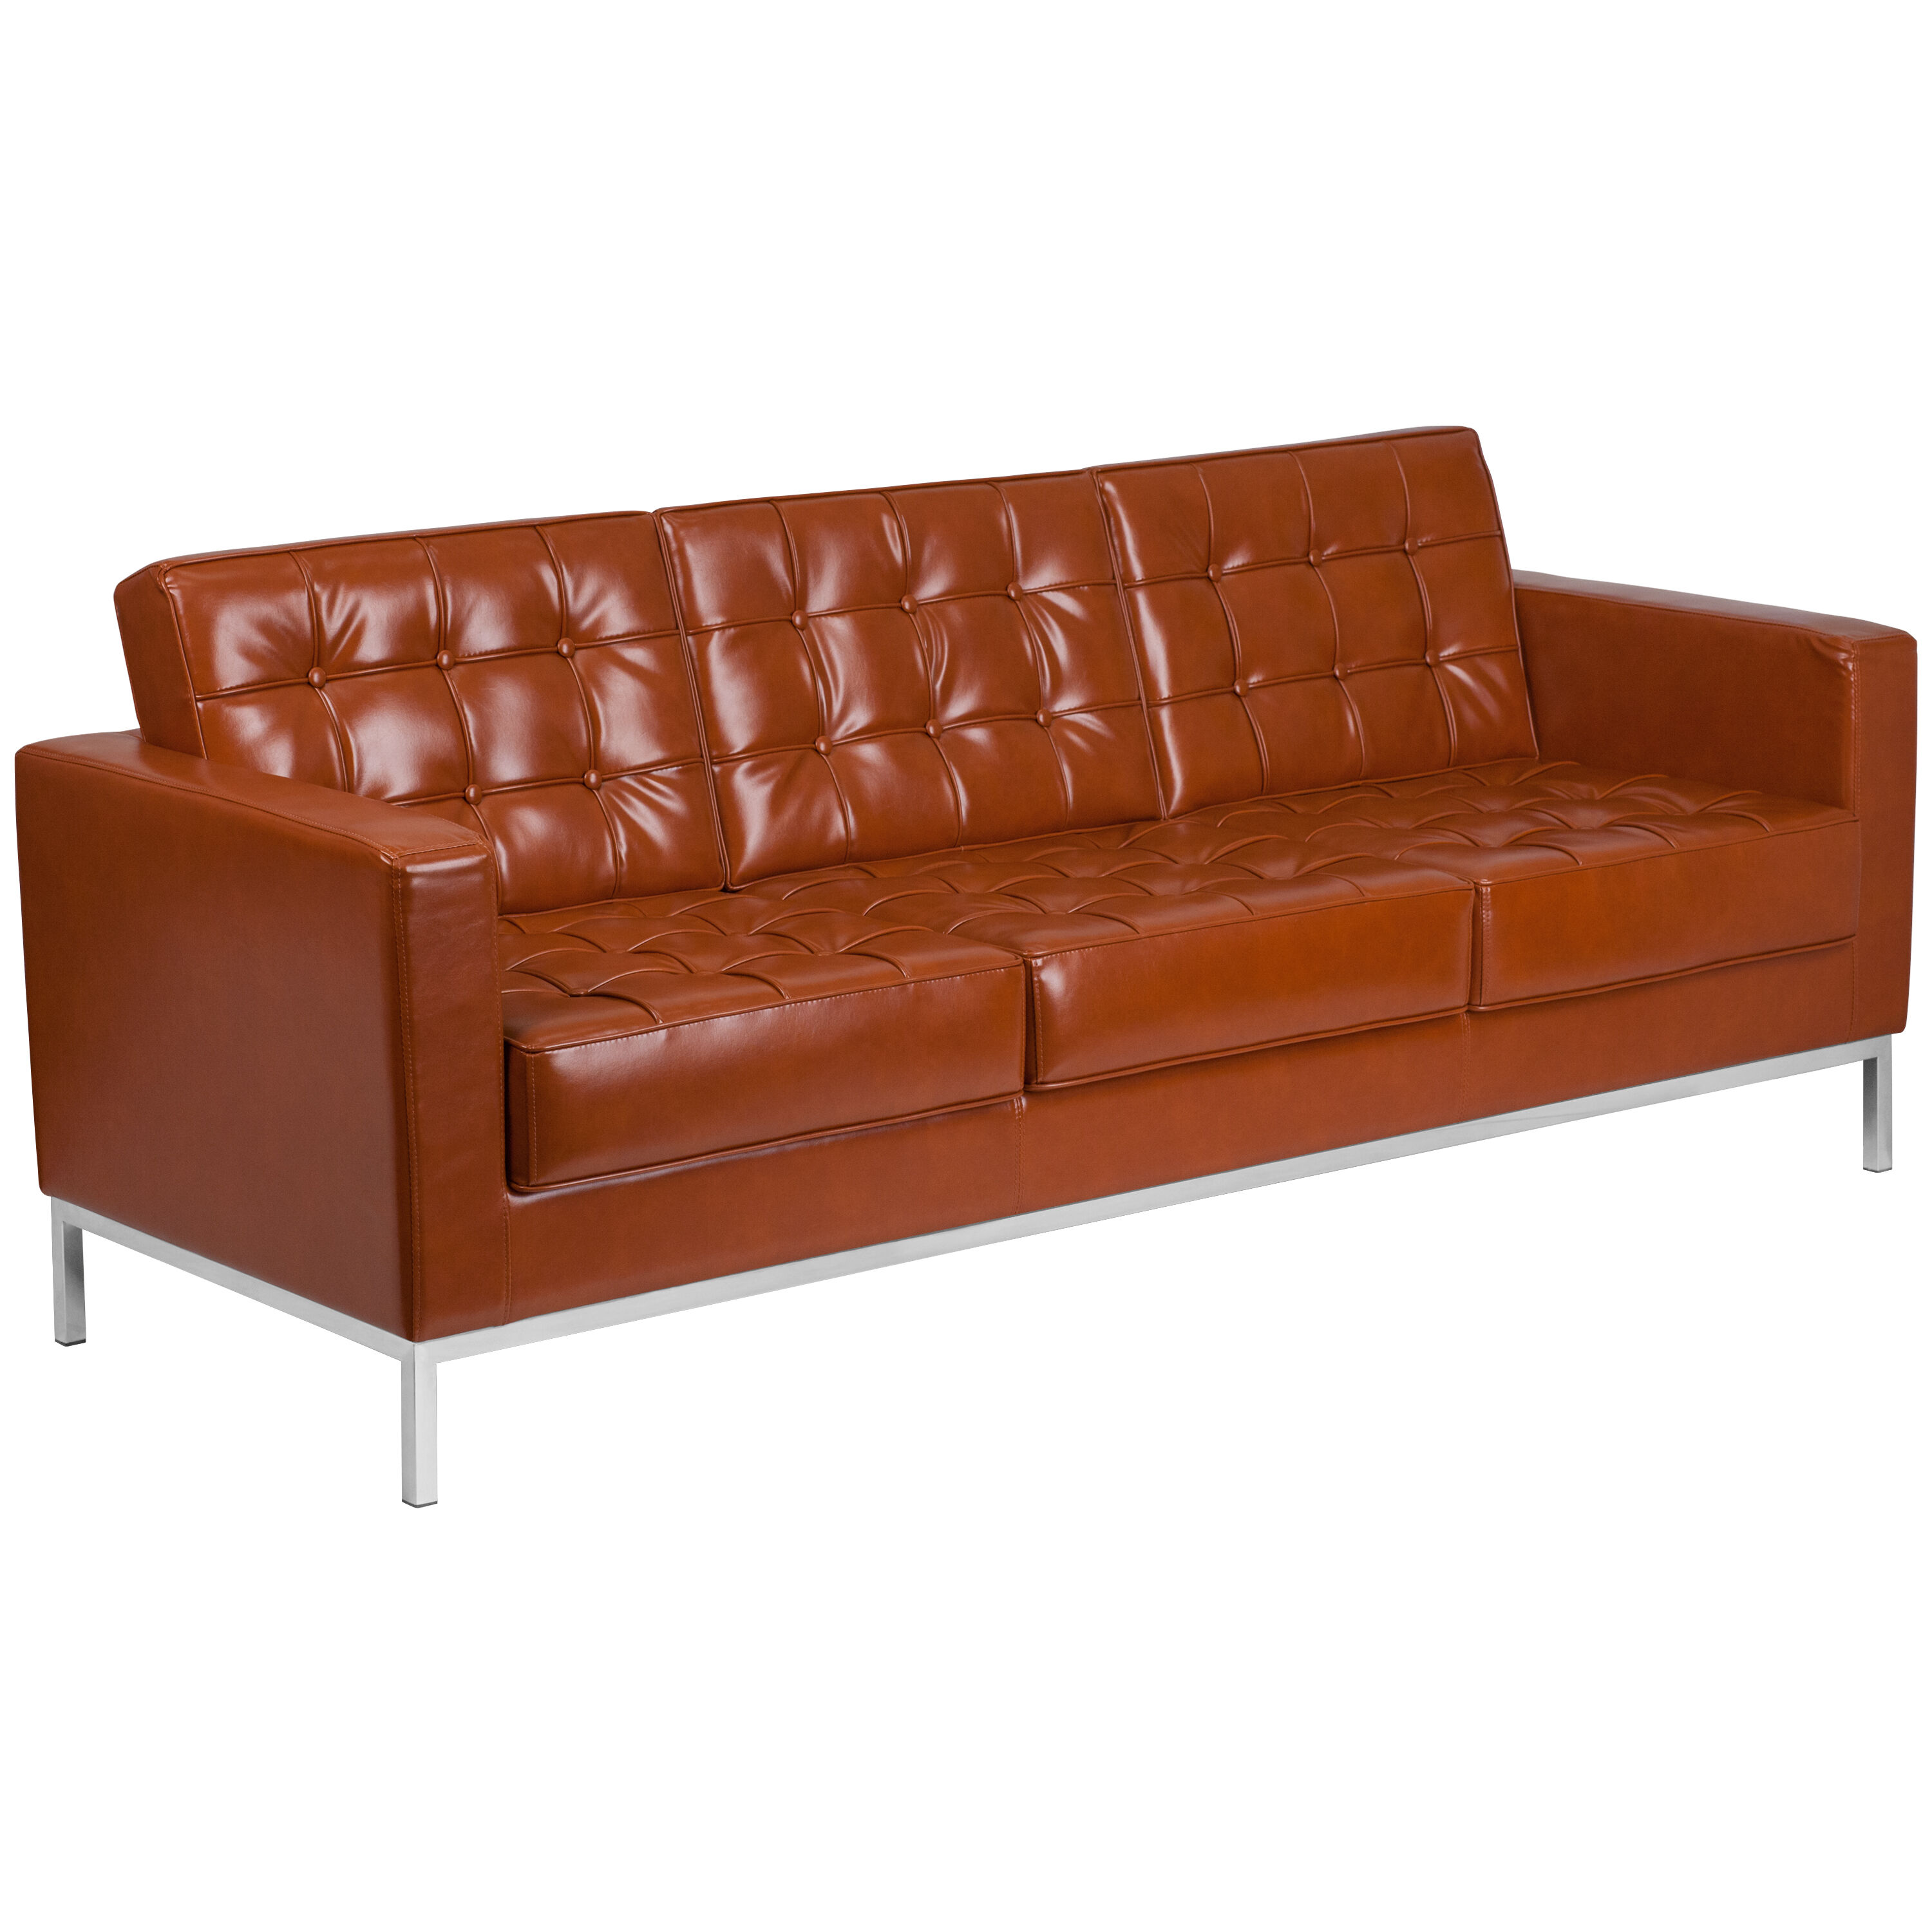 Sofa Cognacfarben Hercules Lacey Series Contemporary Cognac Leather Sofa With Stainless Steel Frame